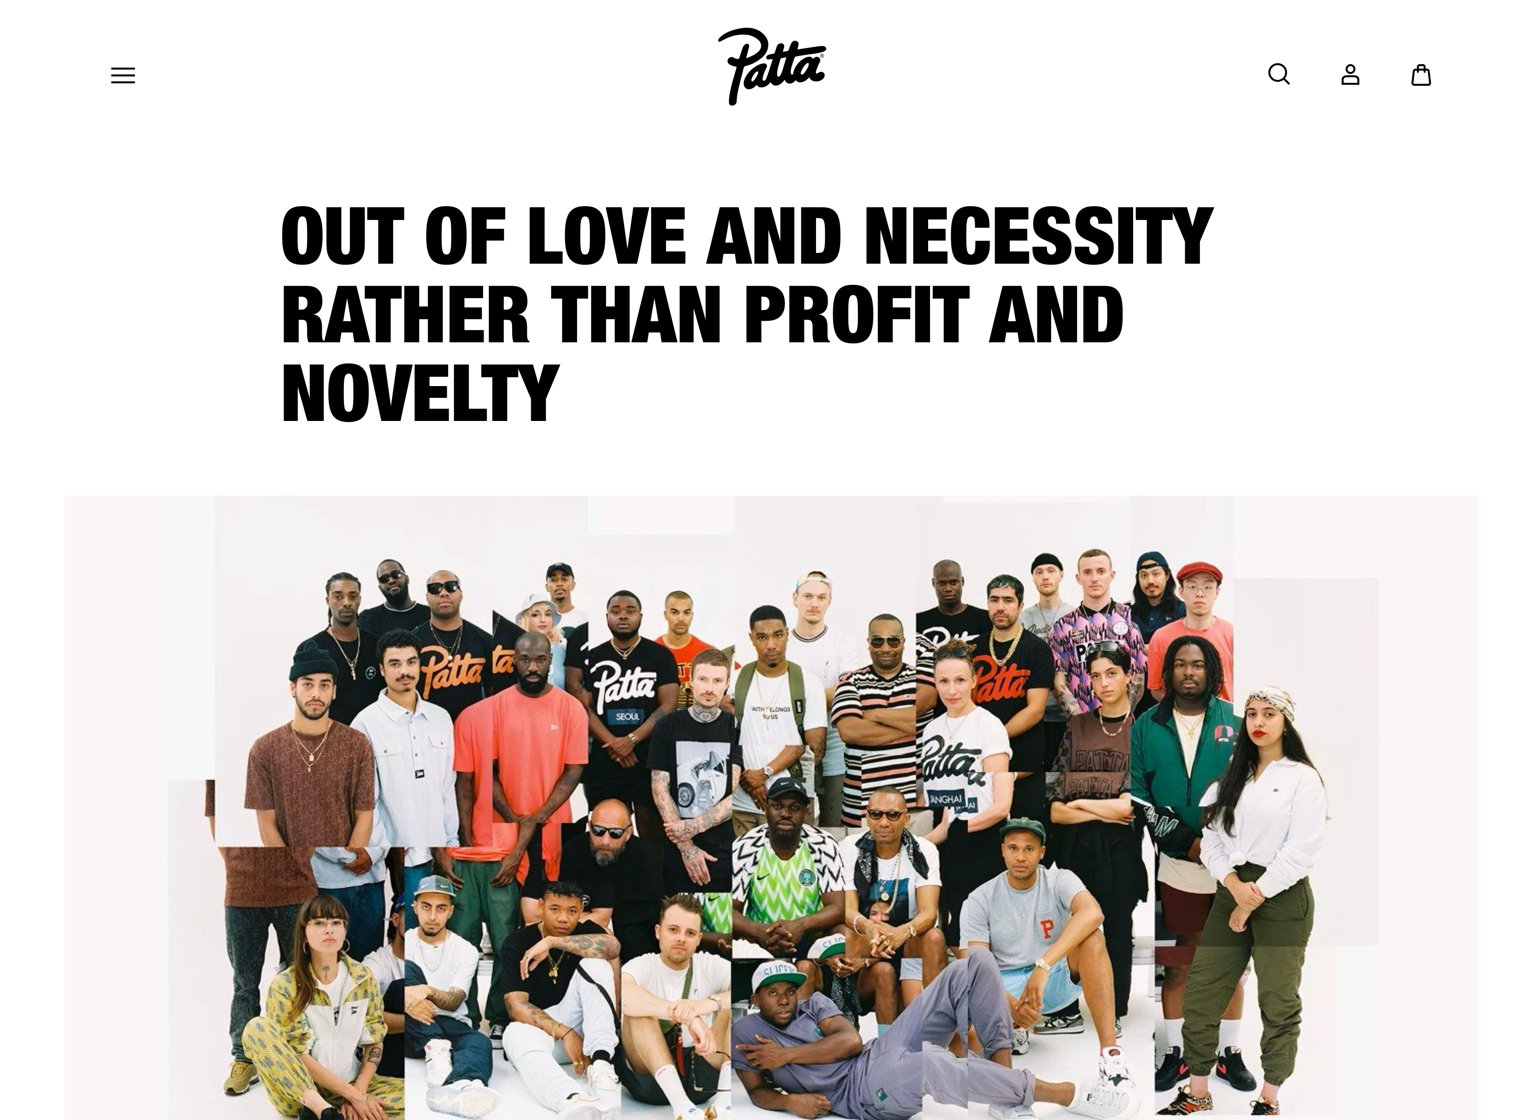 Patta website example